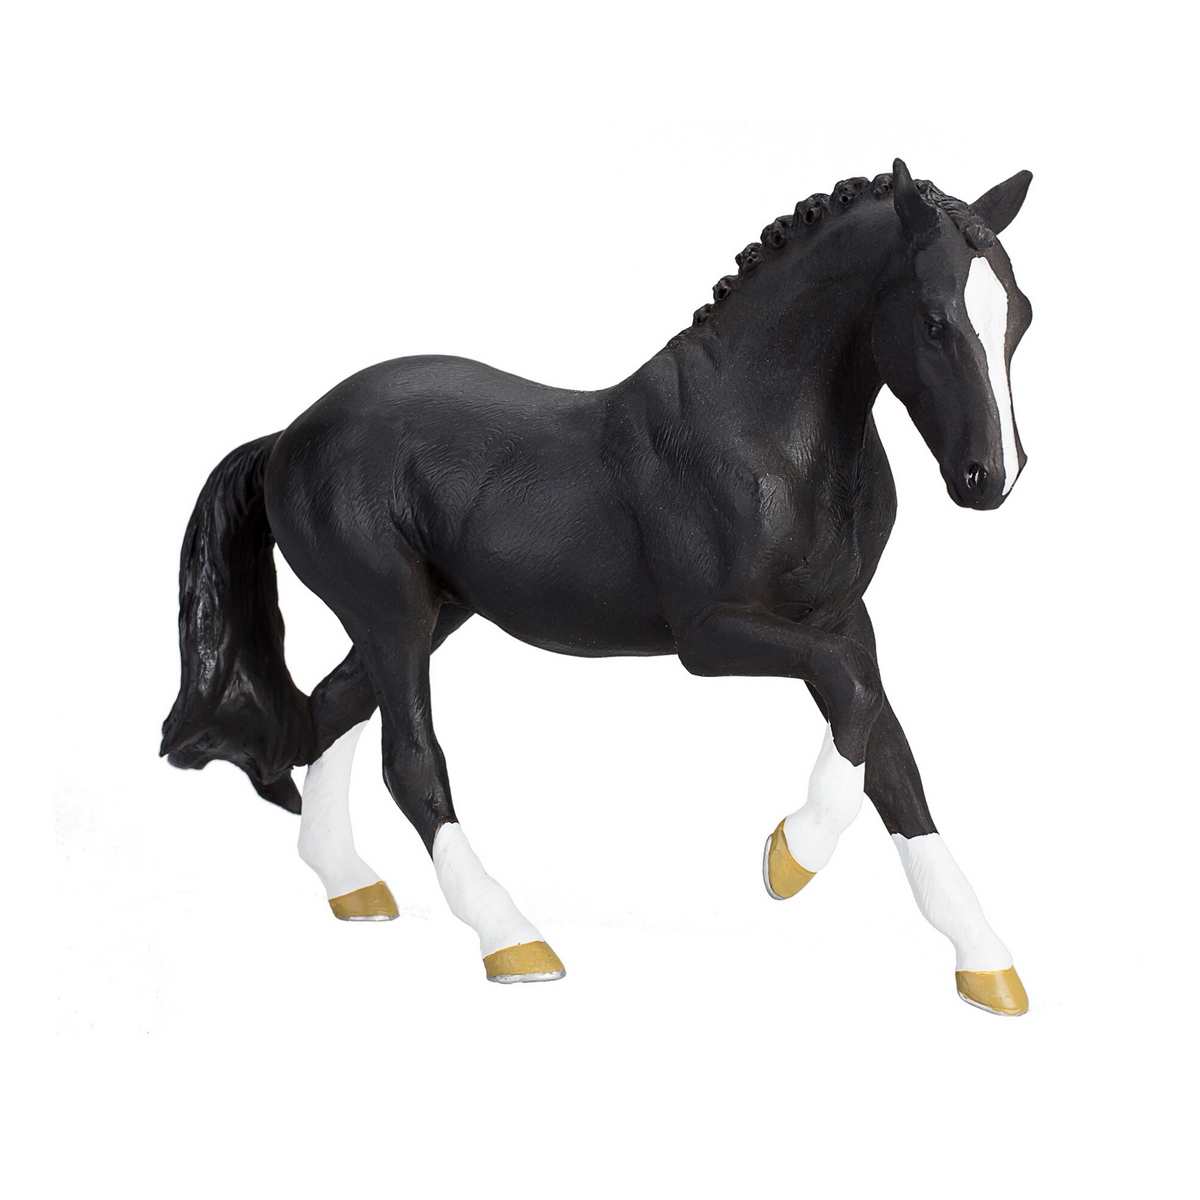 Black Hanoverian Horse Animal Planet 387241